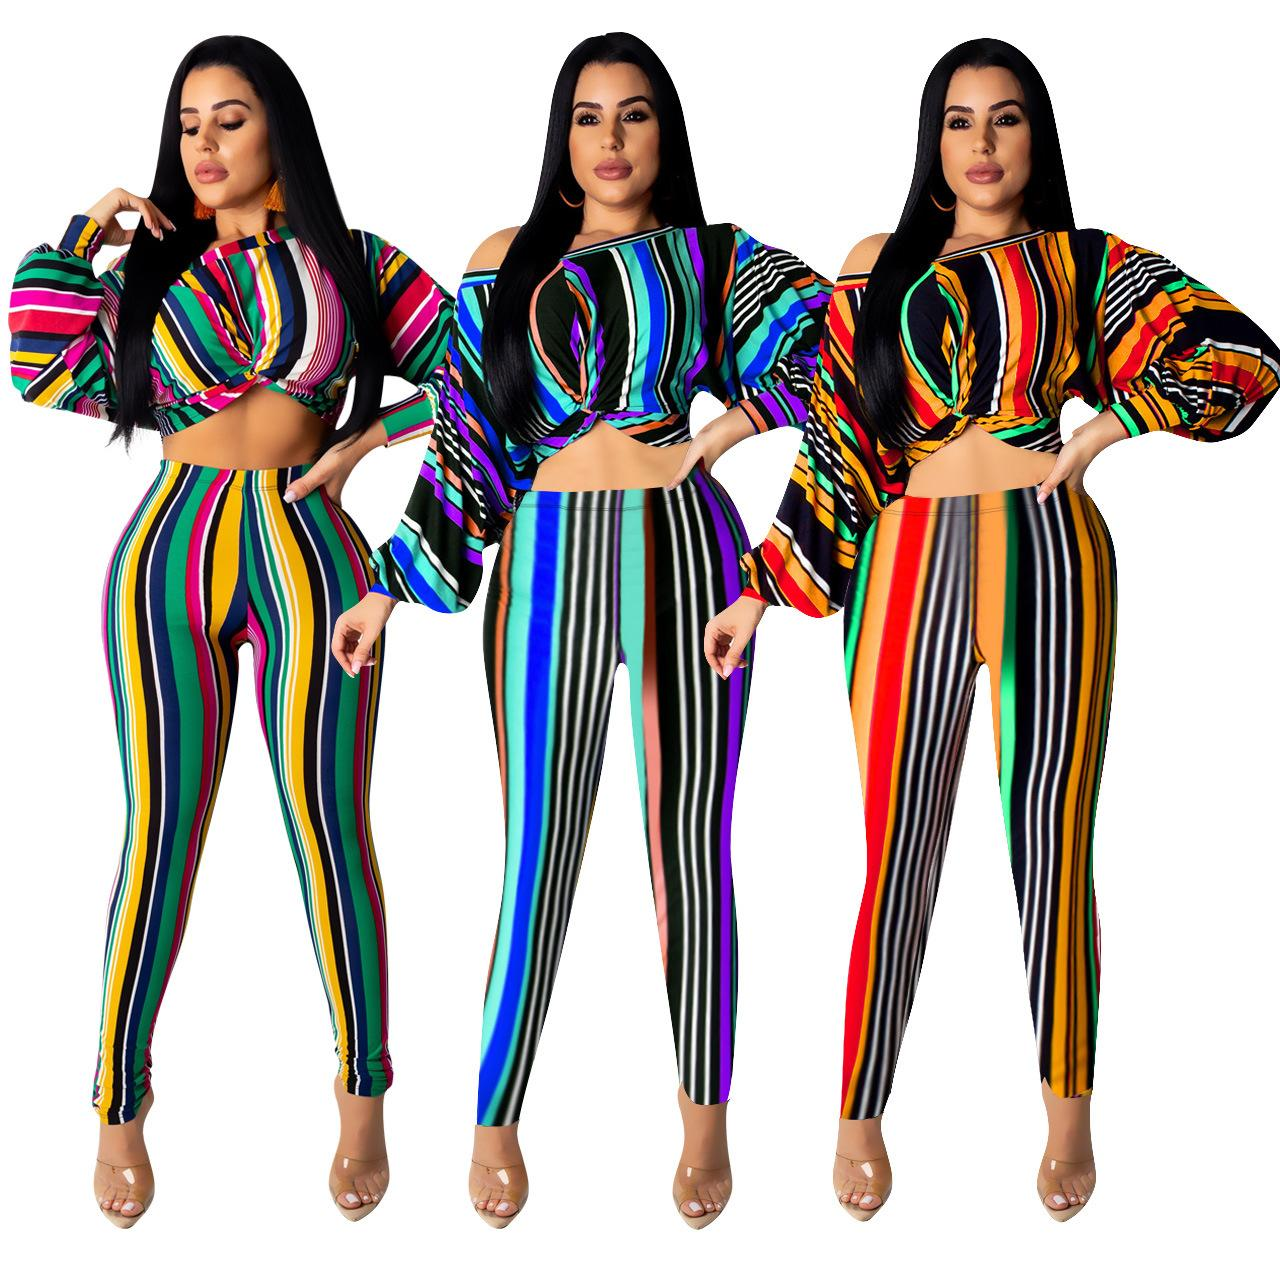 Women Two Piece Outfits Rainbow 2 Piece Pants Set Stripe Print Long Batwing Sleeve Short Crop Top Long Pencil Pants Green Blue Yellow